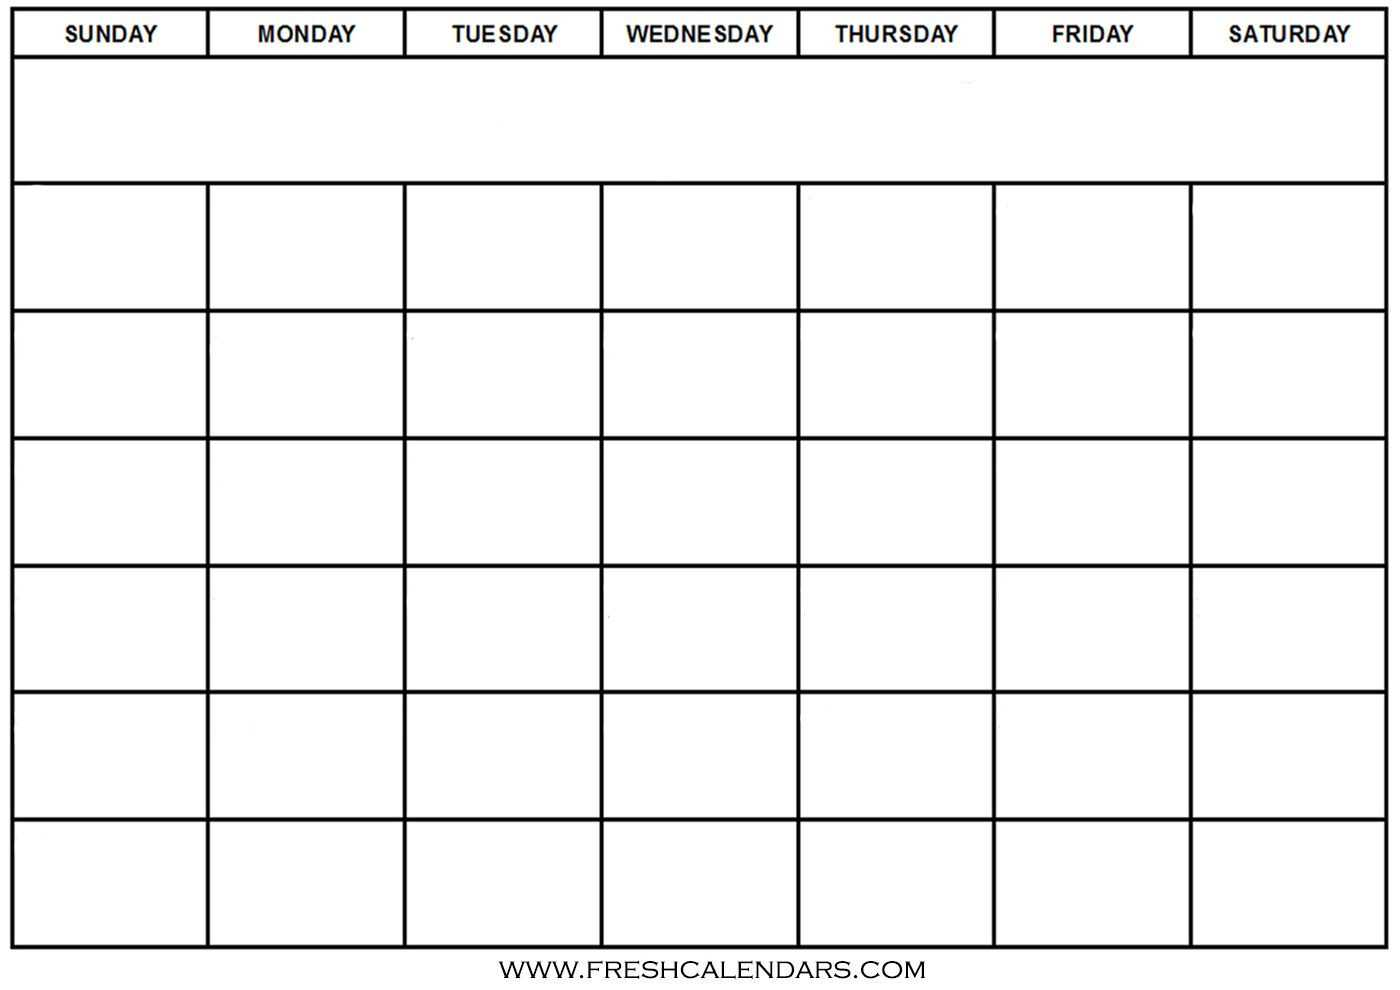 30 Print Free Calendar Template | Andaluzseattle Template with Blank Calender Template